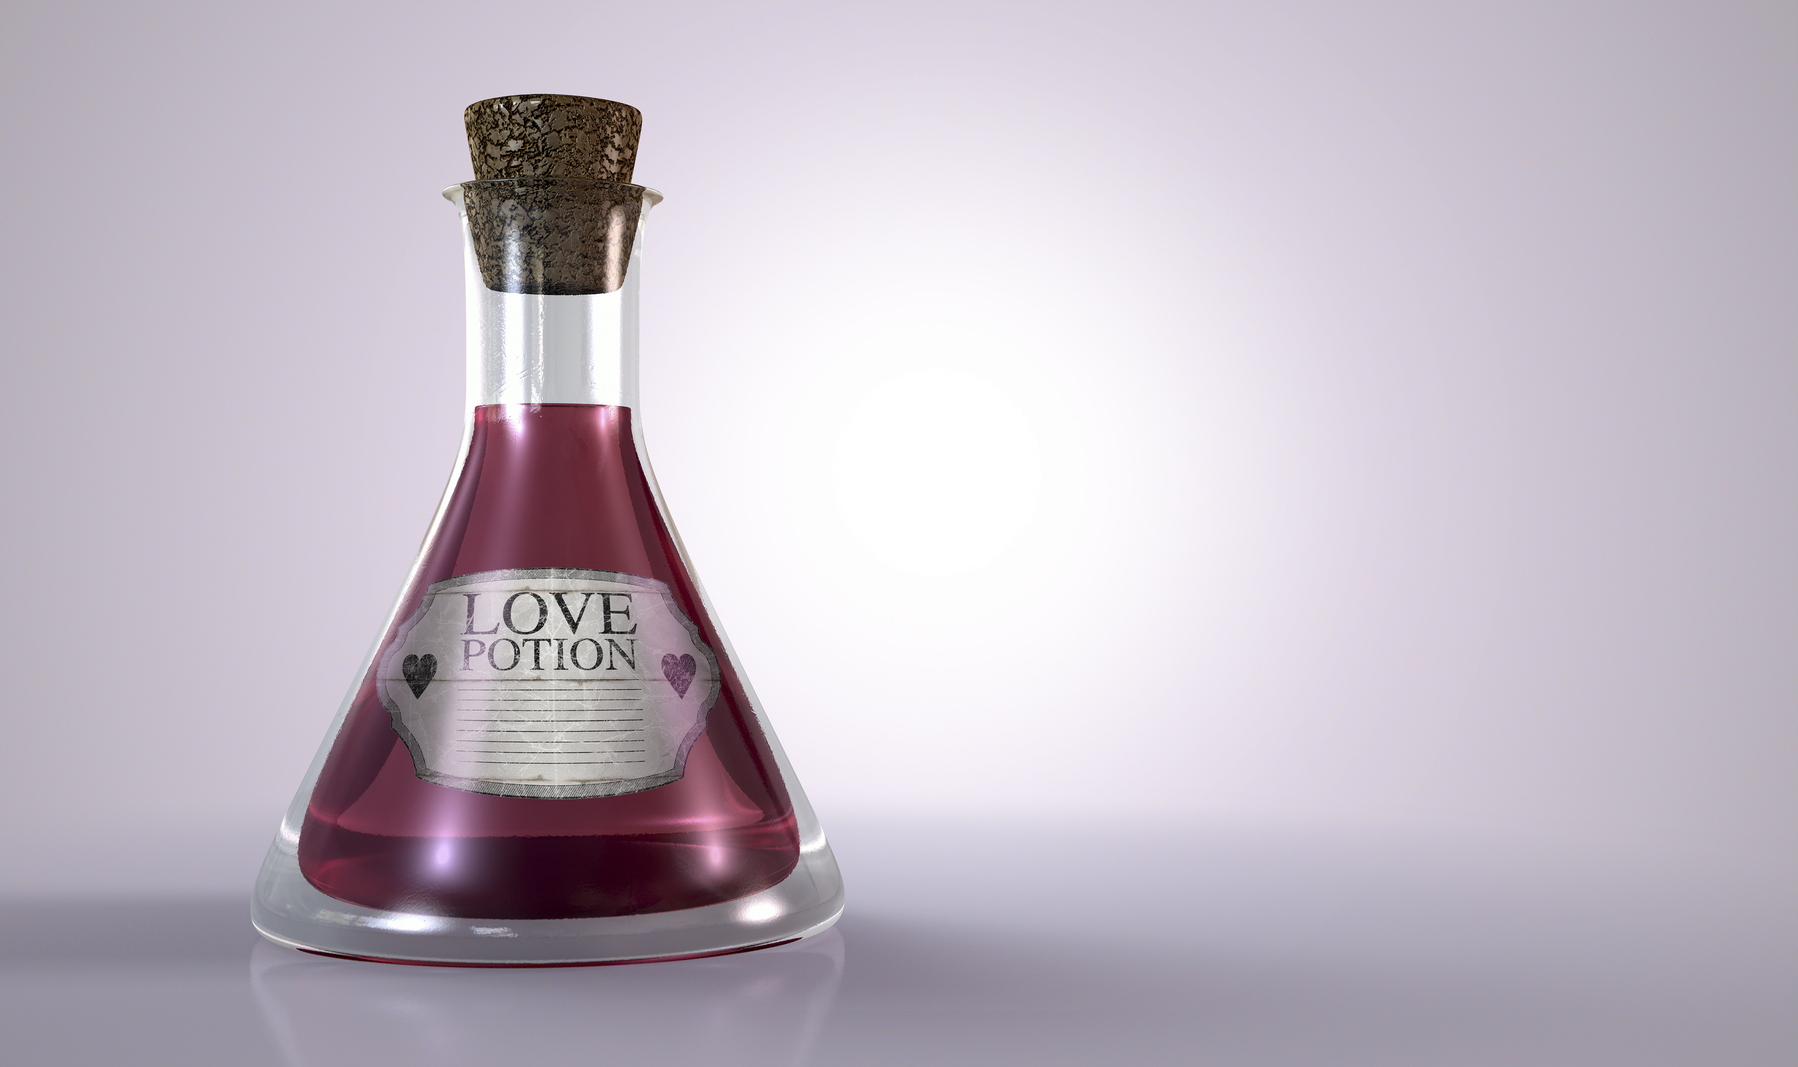 The Secret Love Potion